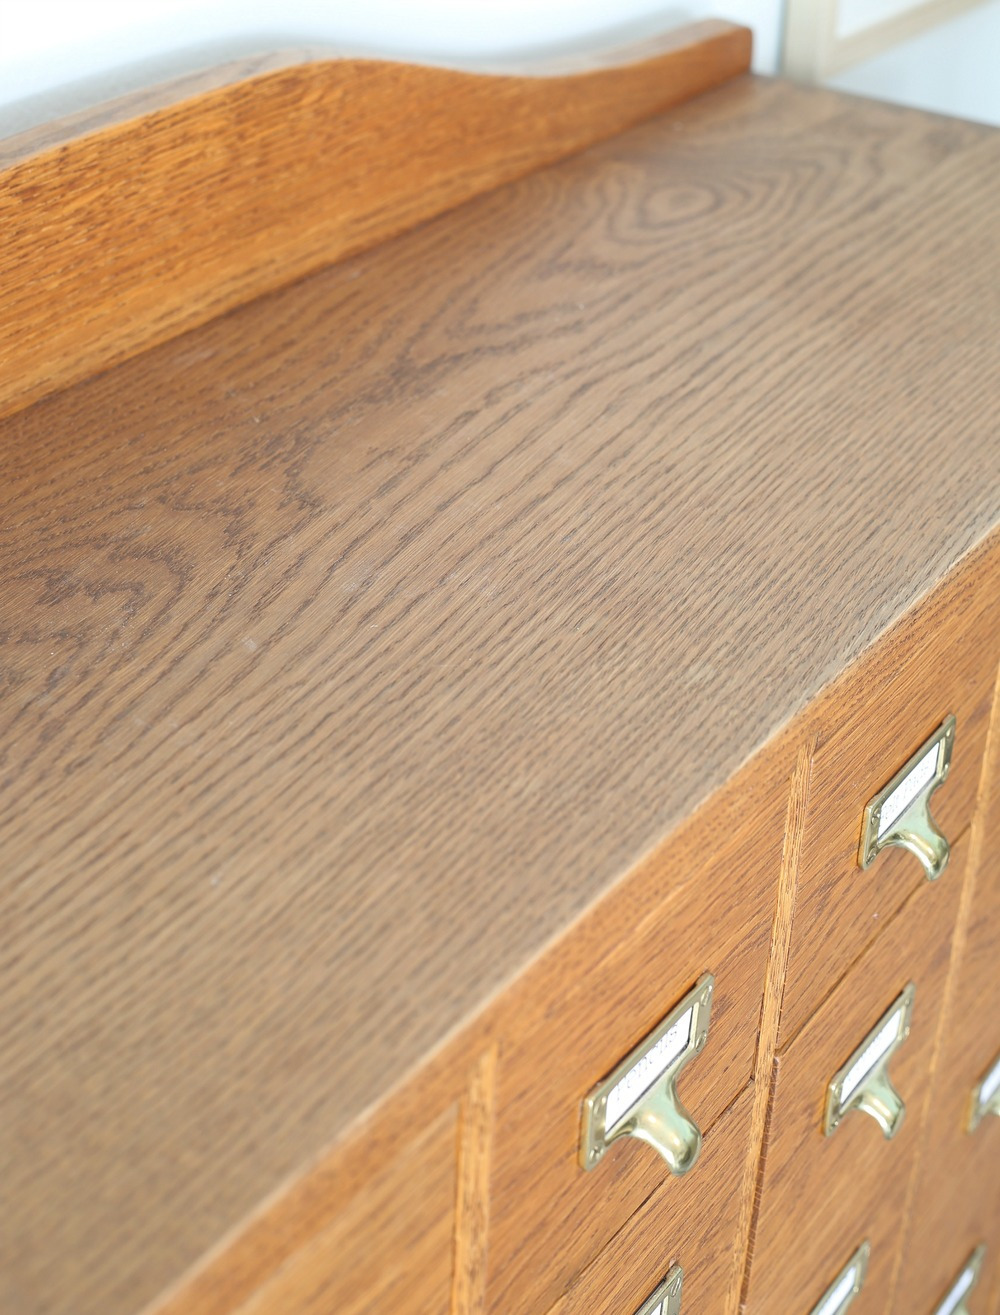 Caring for Antique Wood Furniture Fresh Cleaning and Refinishing Wood Furniture Guide